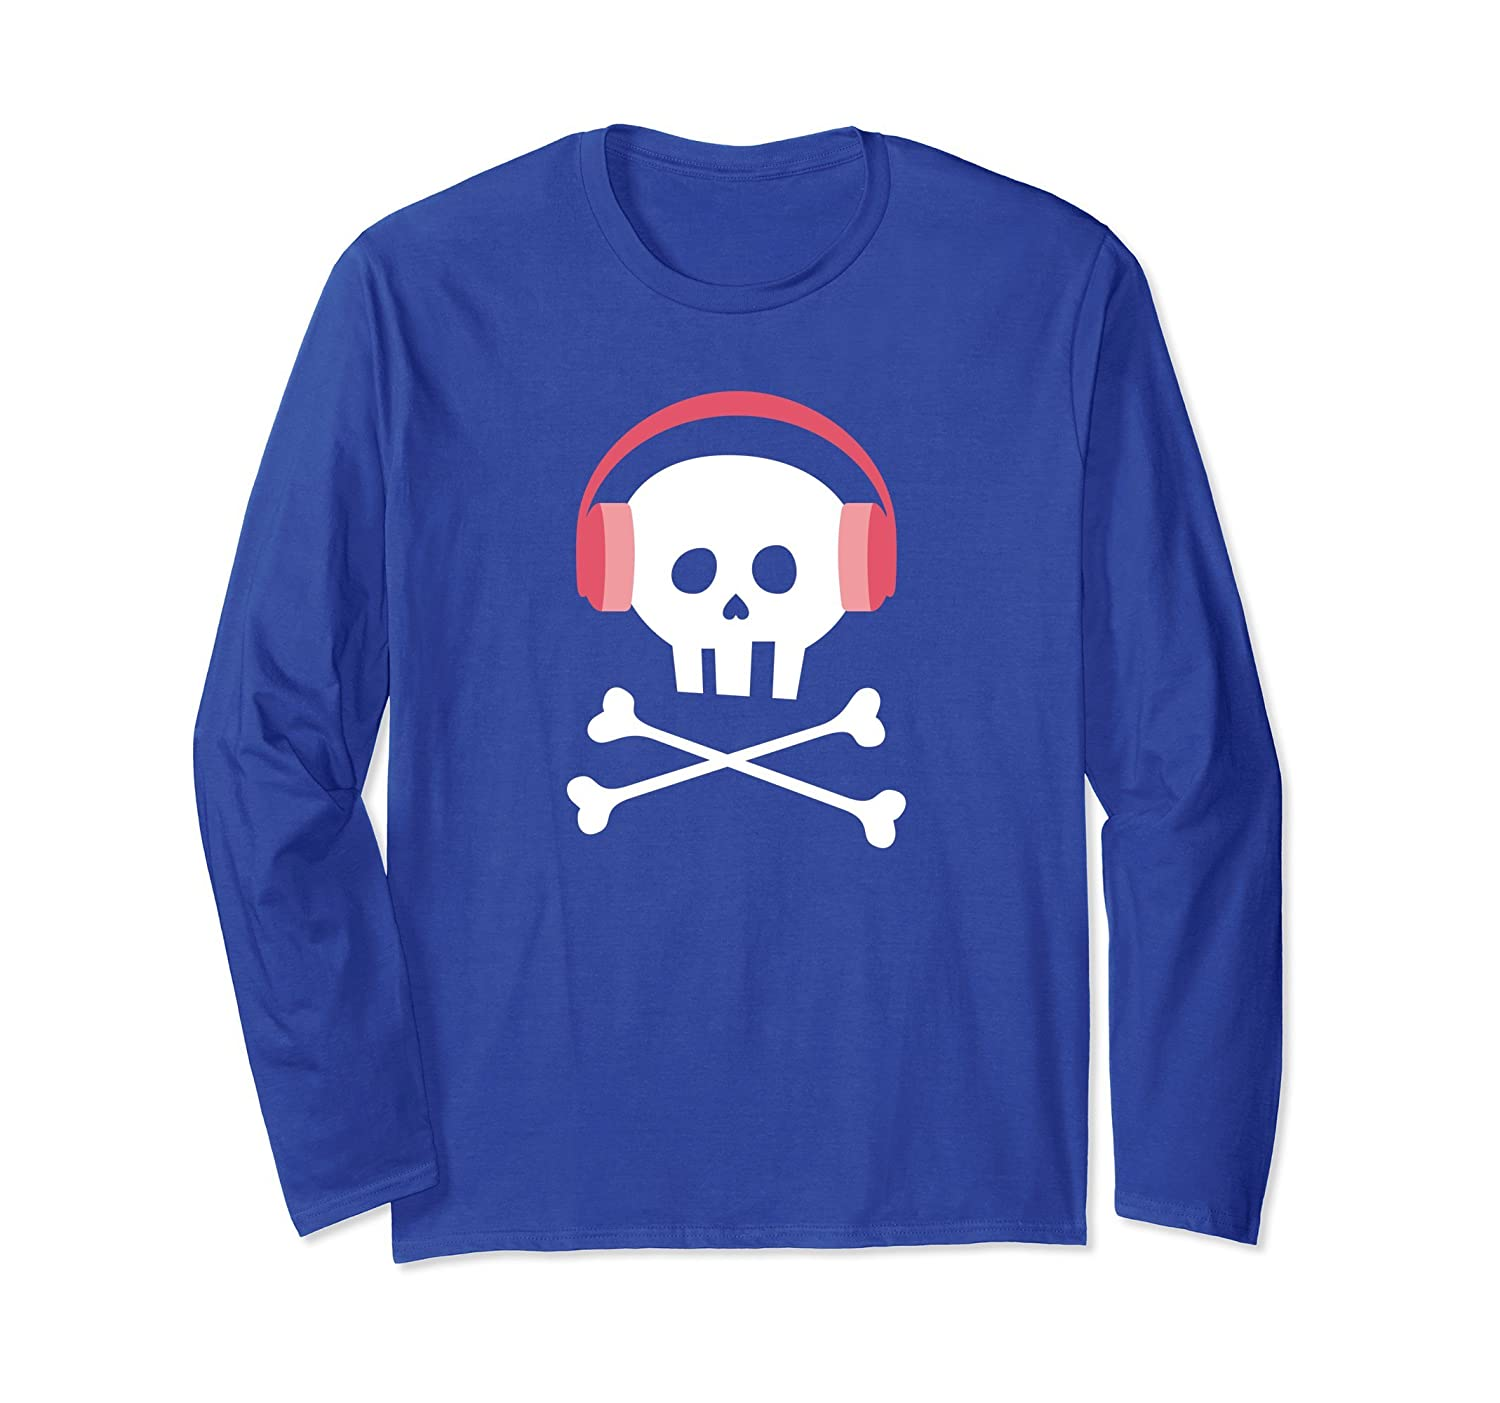 Cute Long-Sleeved Skull Shirt for Girls and Women-mt